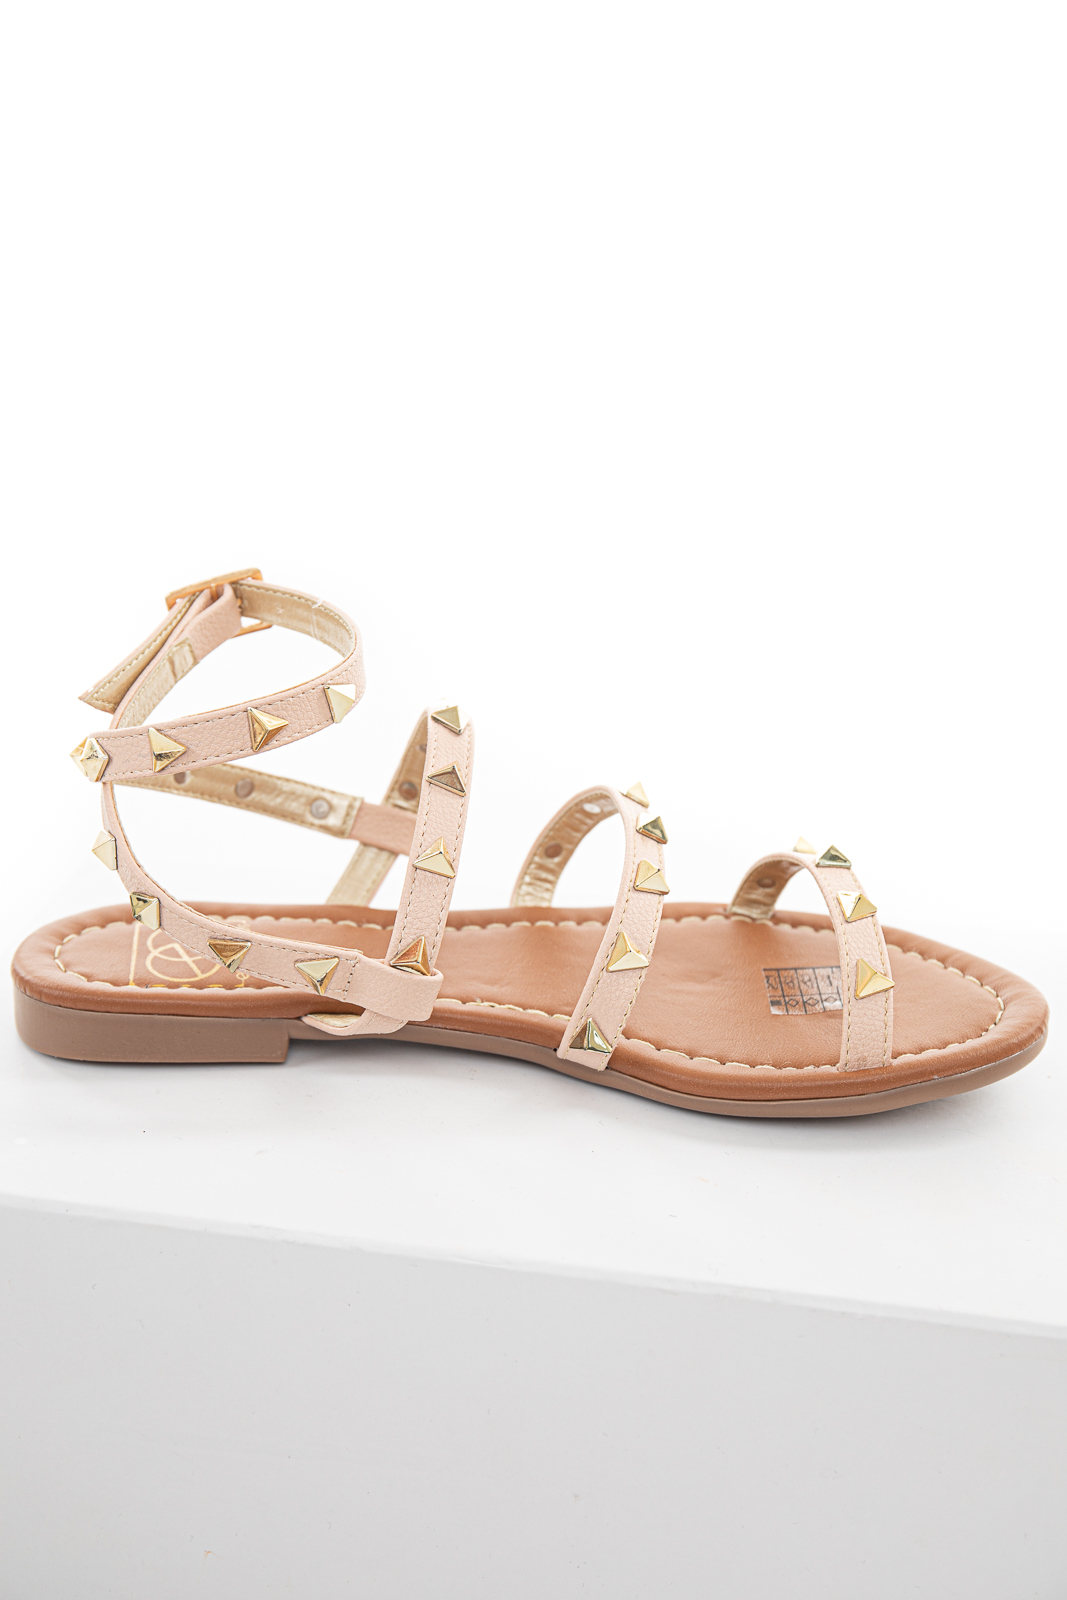 Dusty Blush and Gold Triangle Studded Strappy Sandals